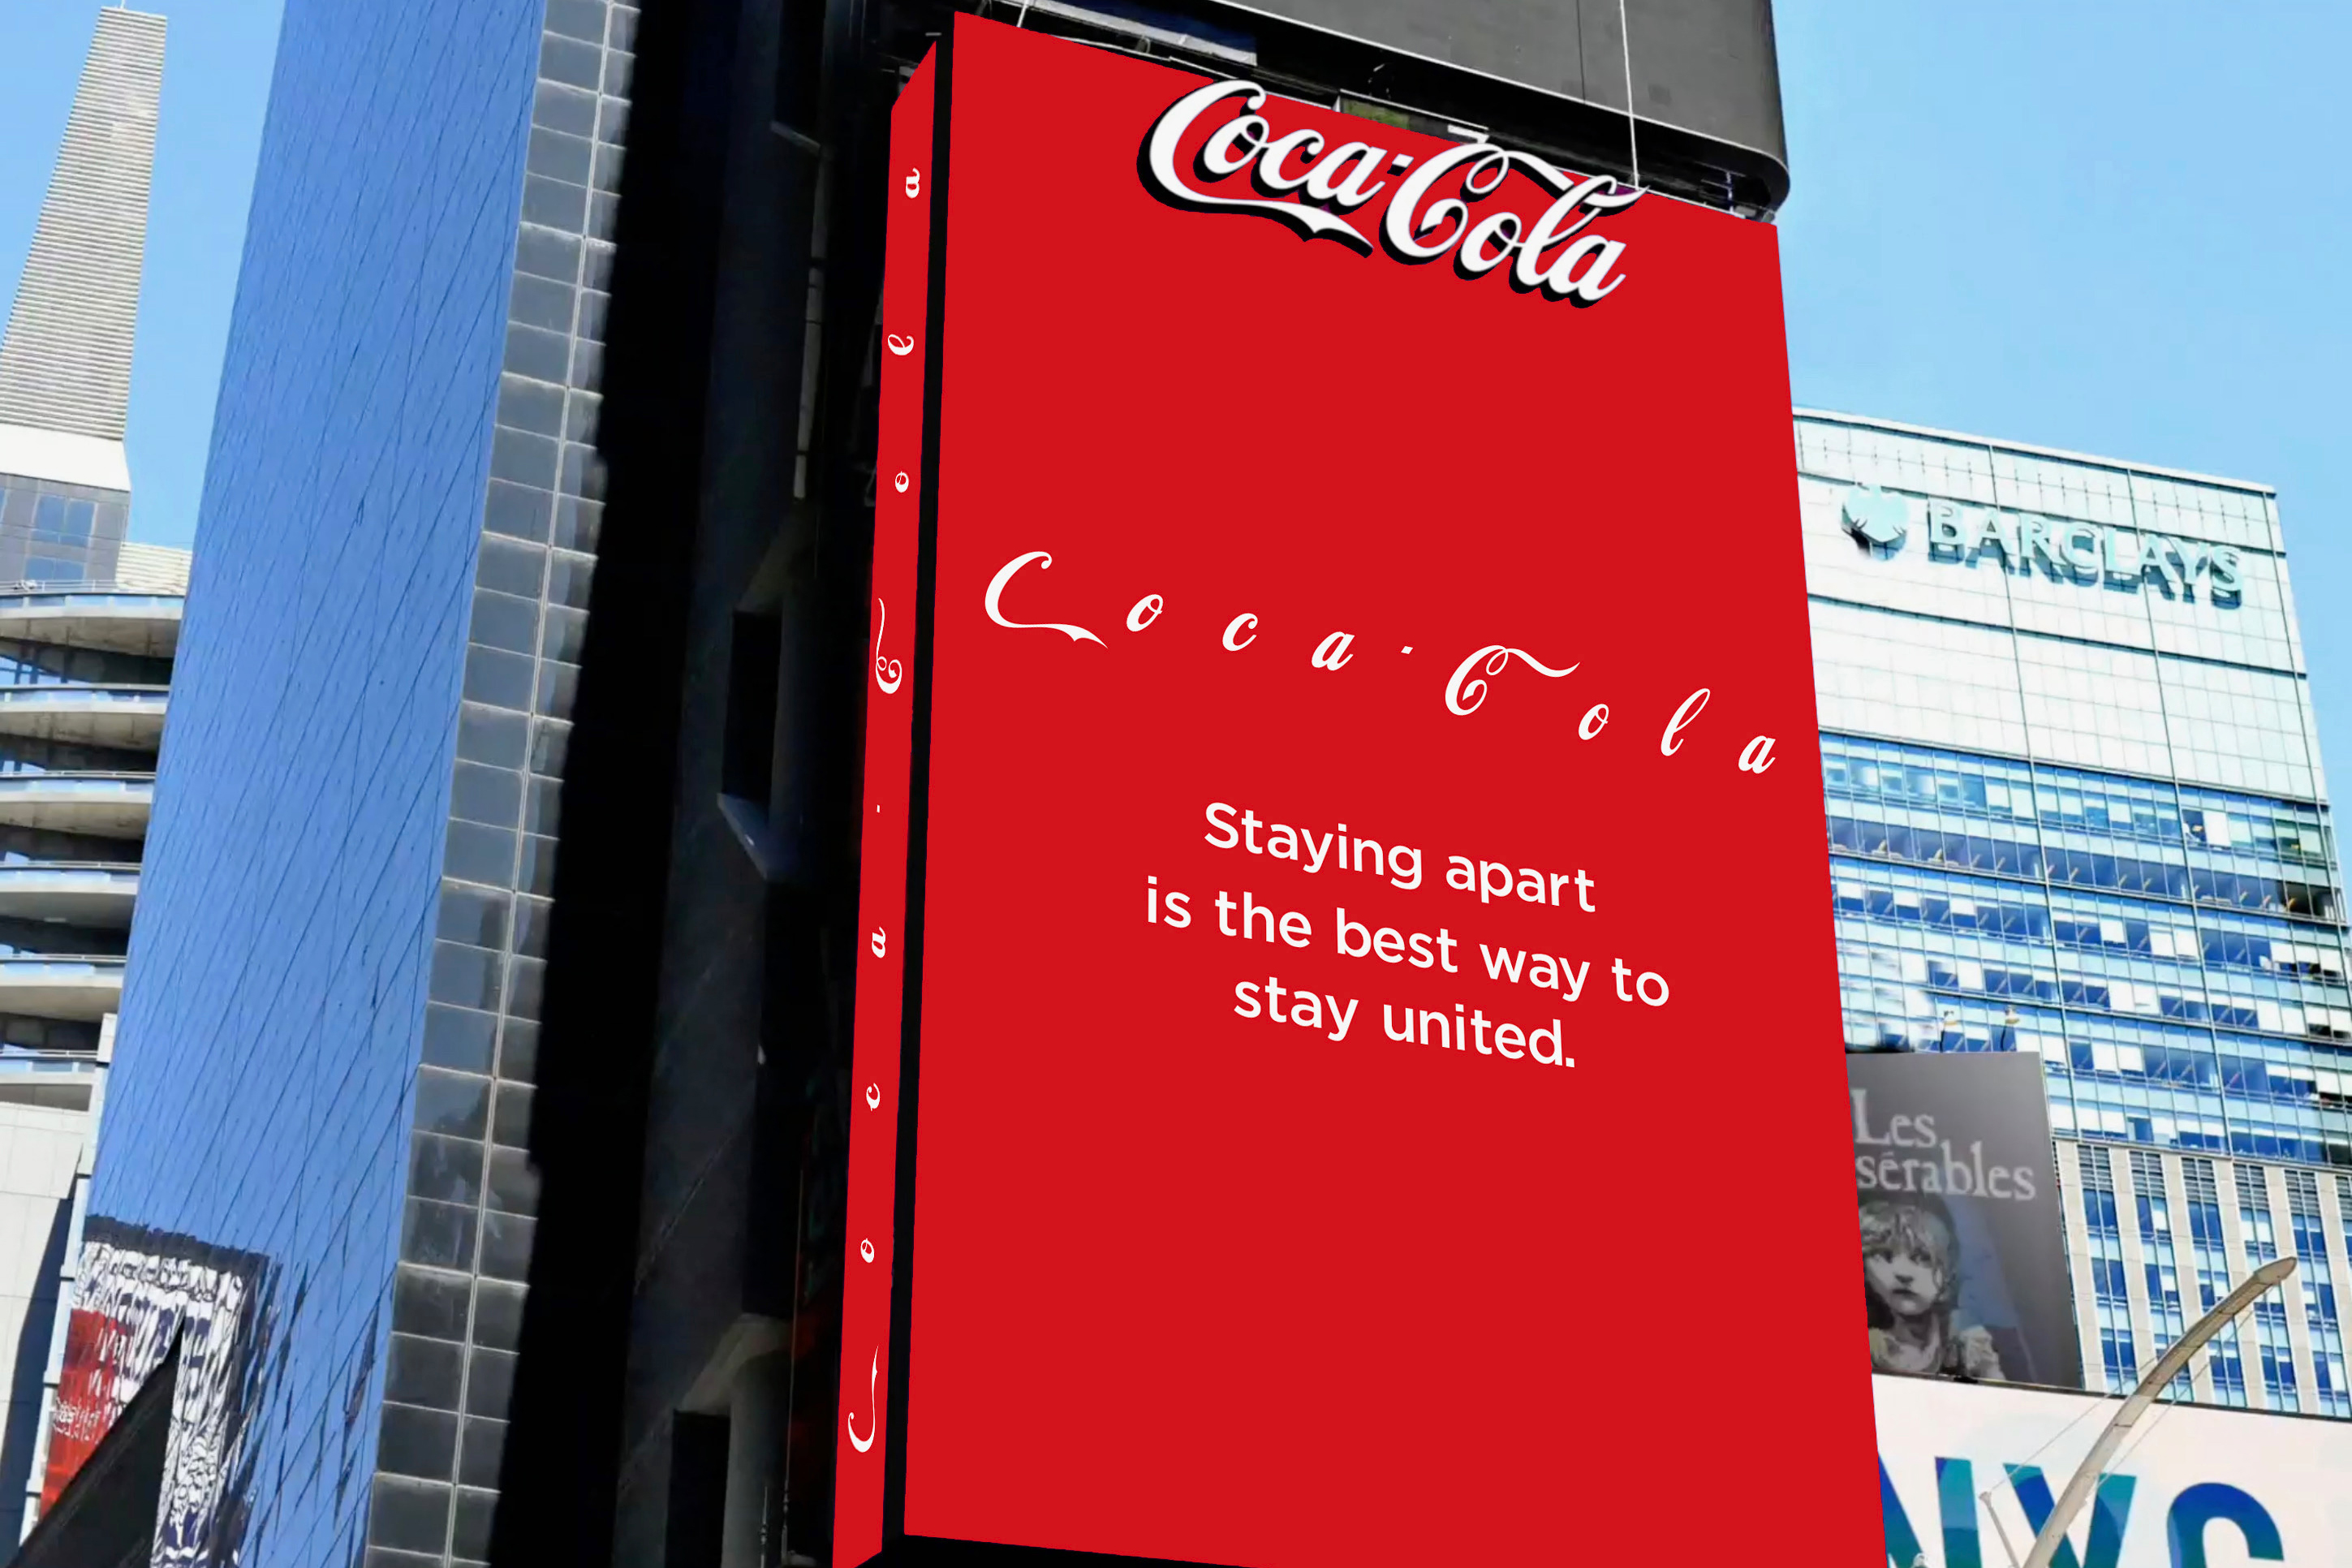 Coke puts social distancing message in Times Square